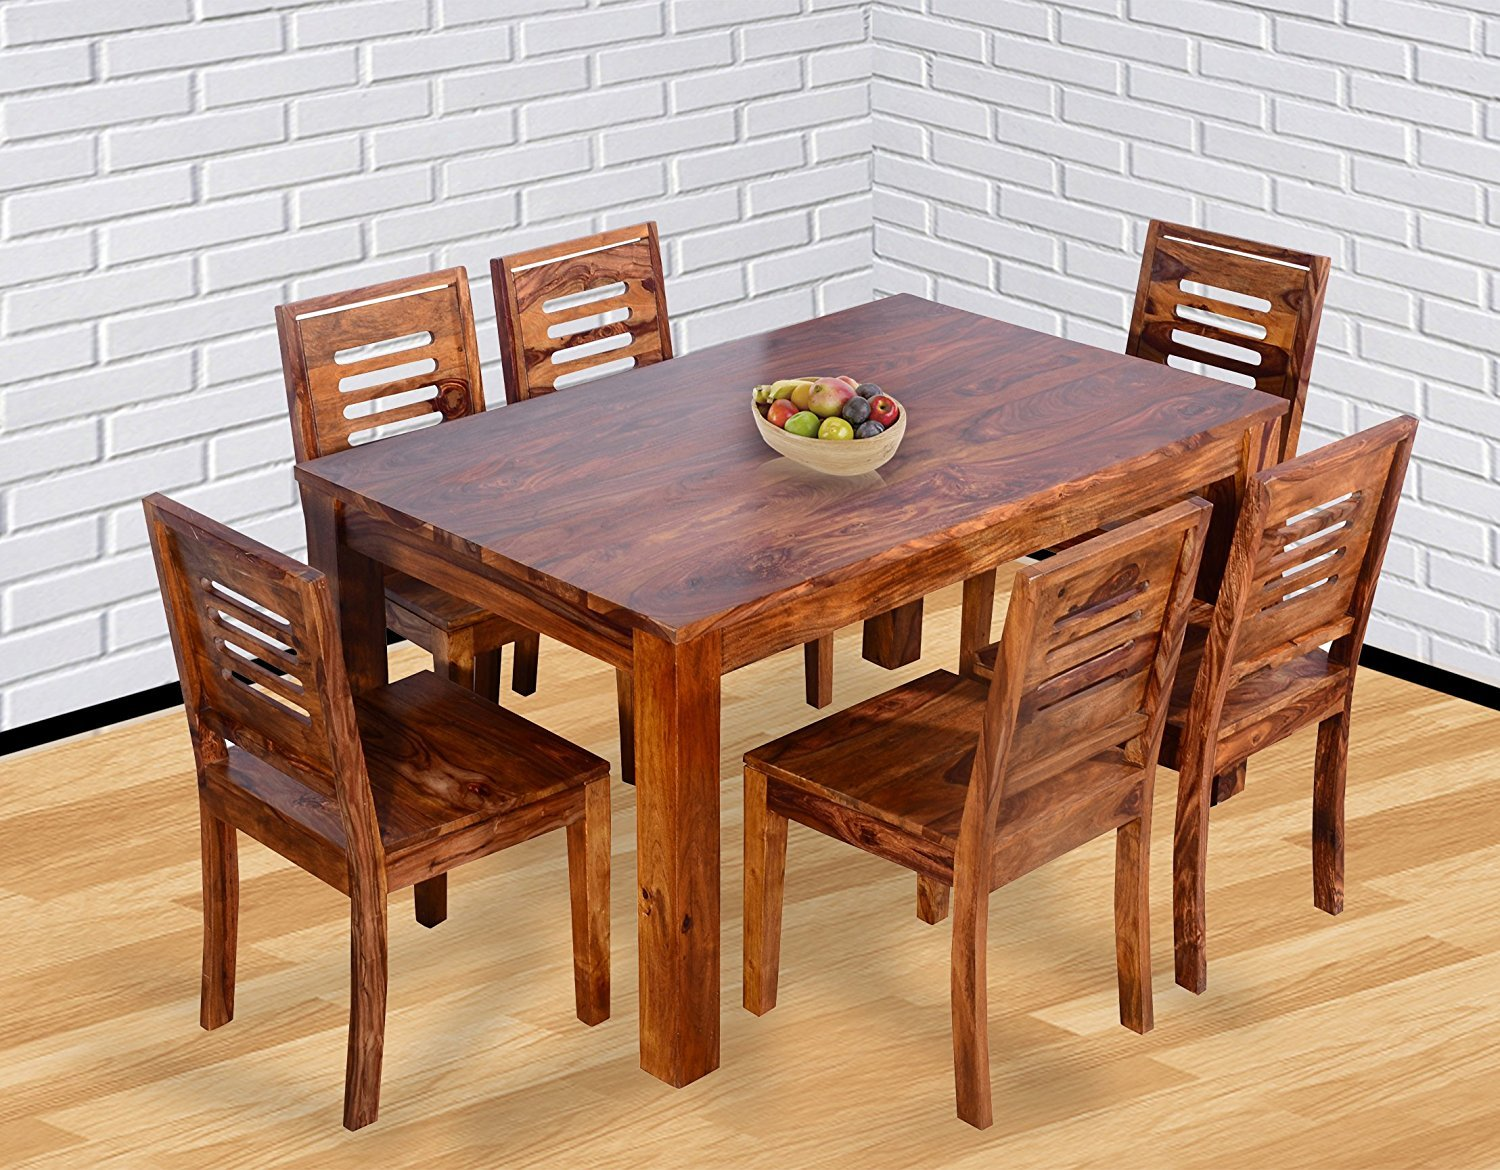 Dining Table With Six Chairs Sse Six Seater Dining Table Set Honey Amazon In Home Kitchen